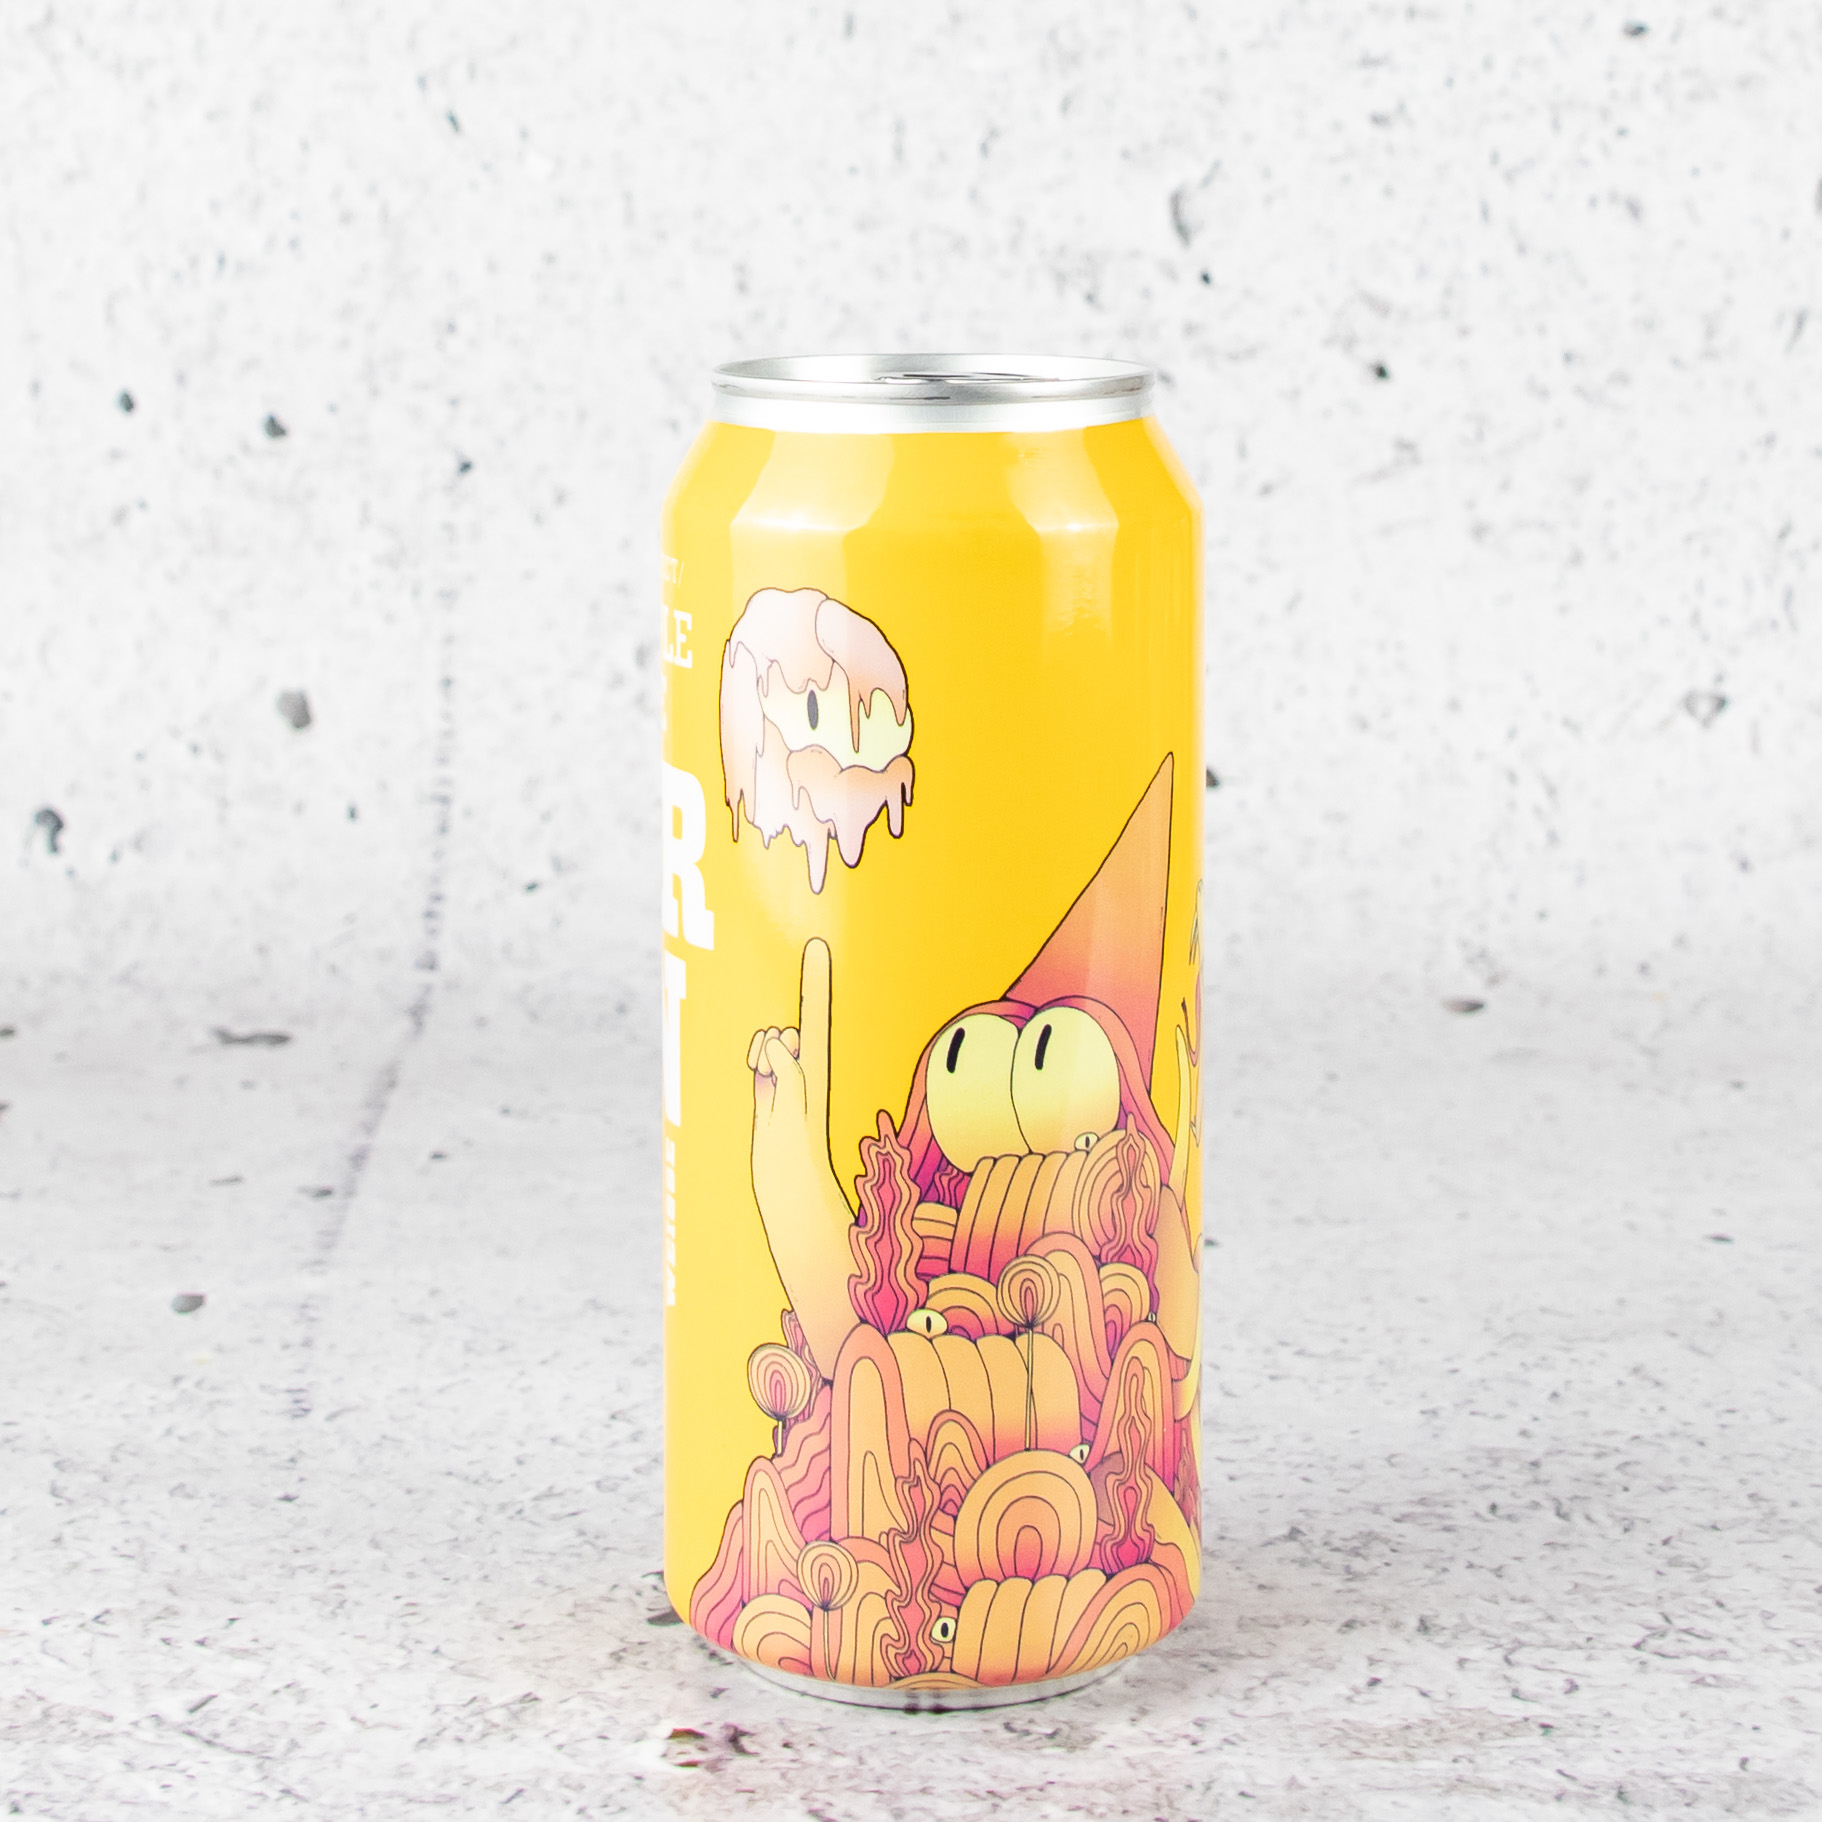 Collective Arts Pineapple Tepache Berliner Weisse